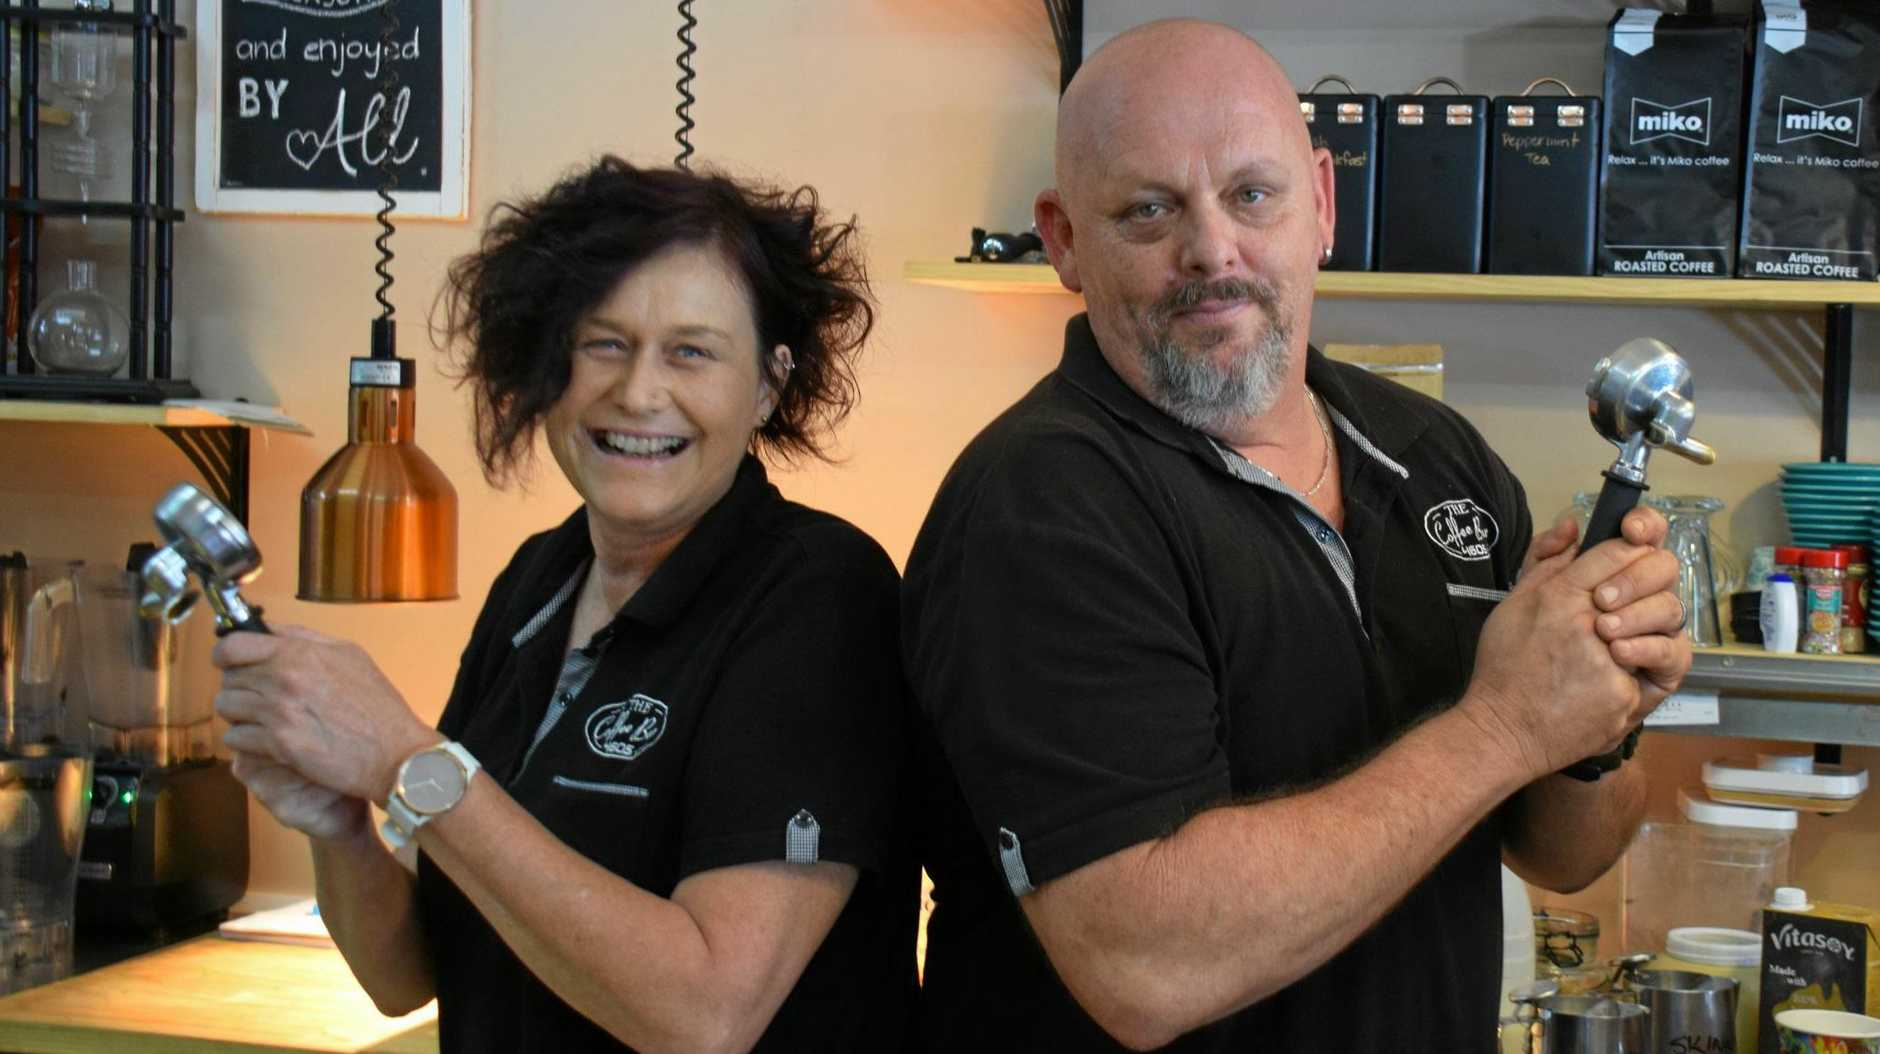 DYNAMIC DUO: Helen and Shaun Walker from Coffee Bar 4605 in Murgon took out the People's Choice Award for South Burnett's best coffee shop.